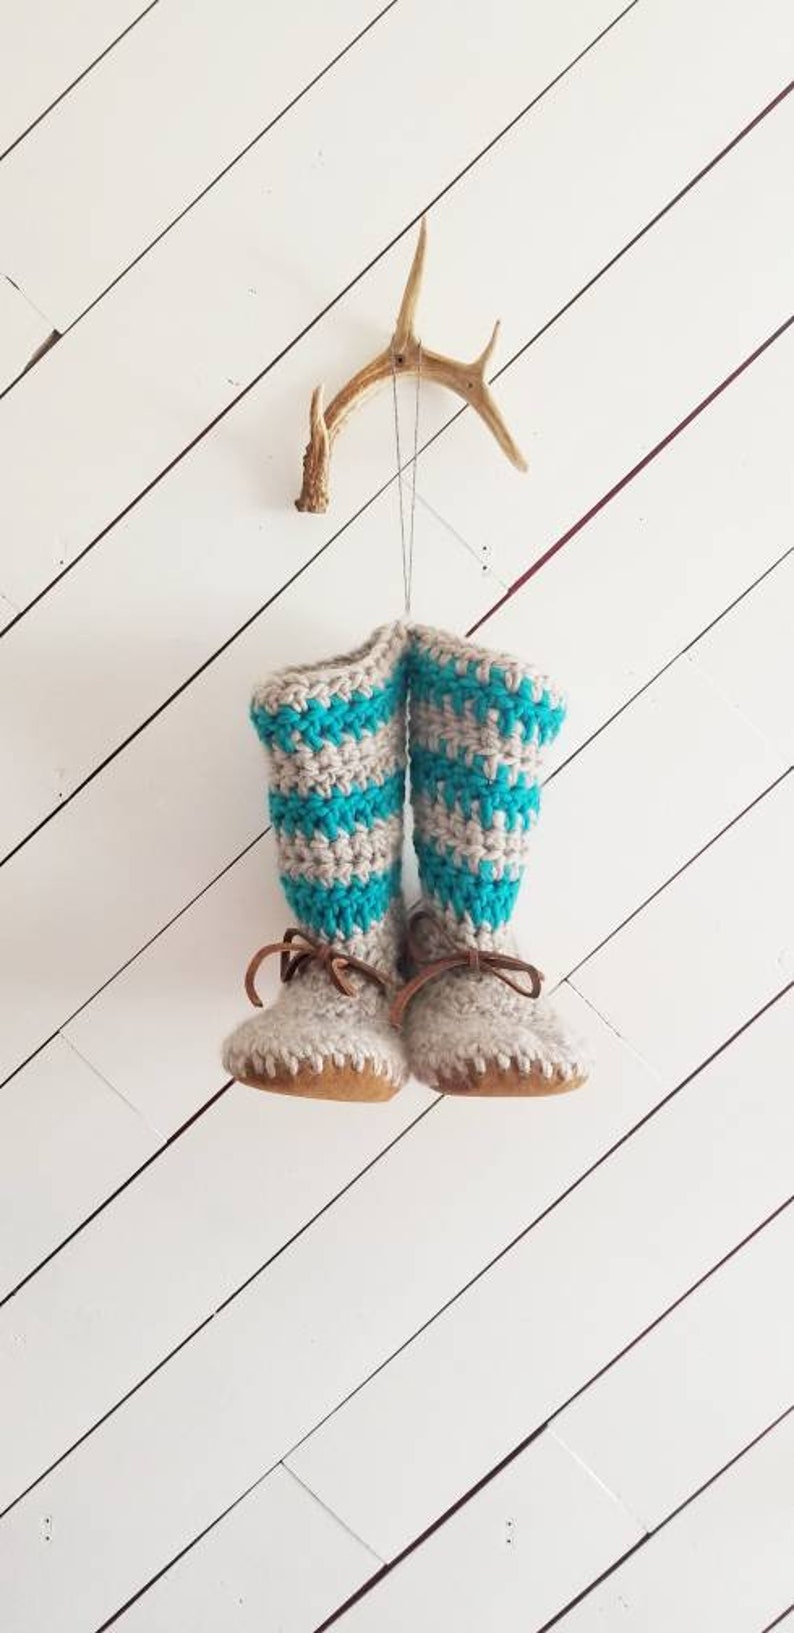 fdeba61d8de6a Womens/ladies turquoise boot Slippers/Mukluks by EcoSoles, Crochet/wool  slippers, leather sole slippers, sheepskin lined slippers